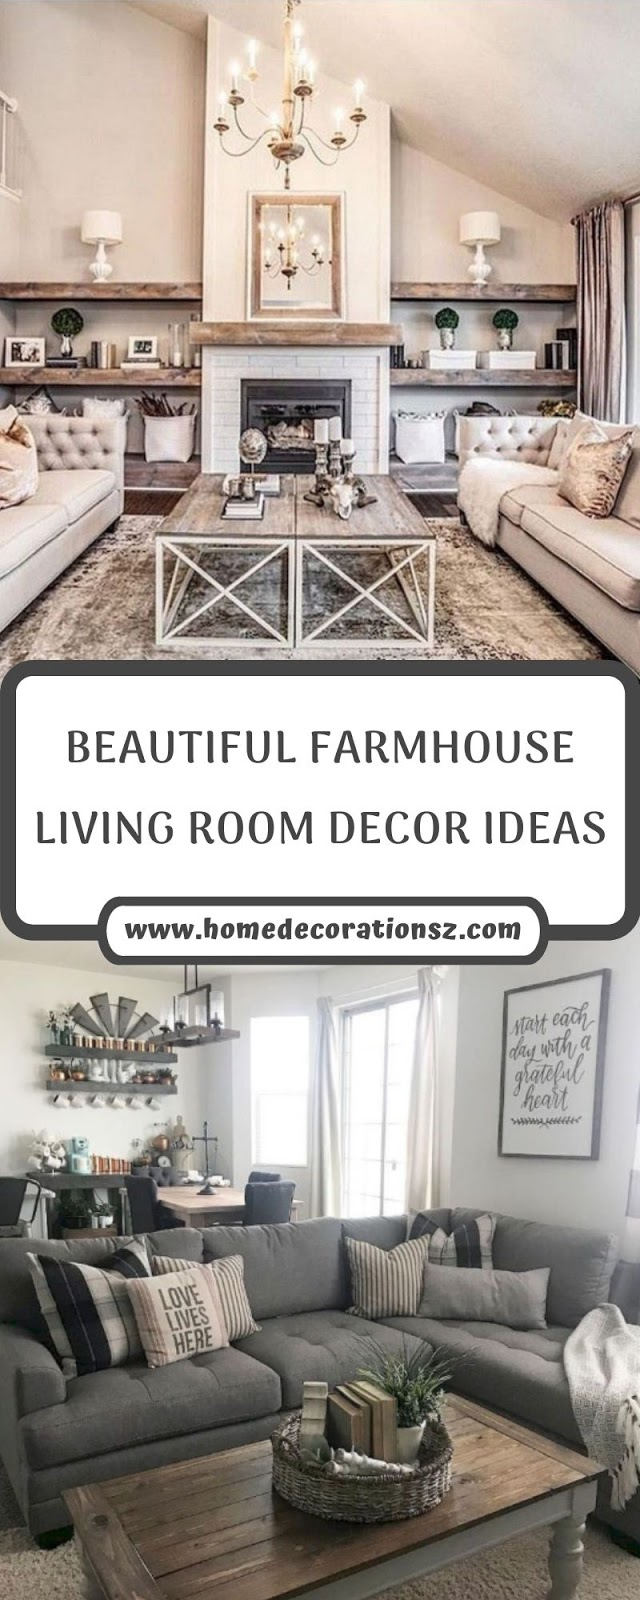 BEAUTIFUL FARMHOUSE LIVING ROOM DECOR IDEAS